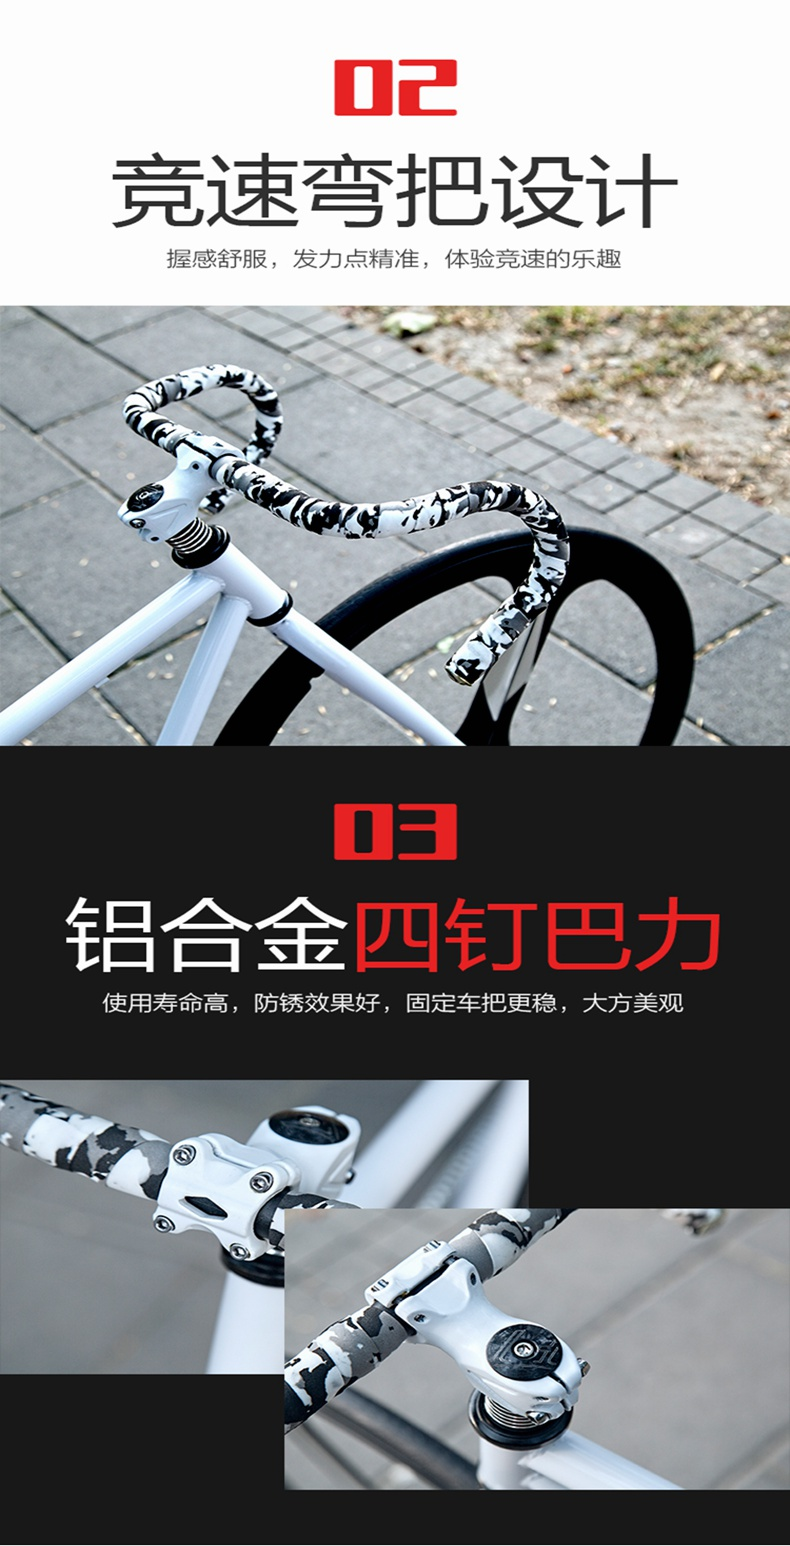 Road Bike Men and Women Student Models Captain America Inverted Brake Riding Solid Tire Bicycle Adult Vehicle Fluorescent